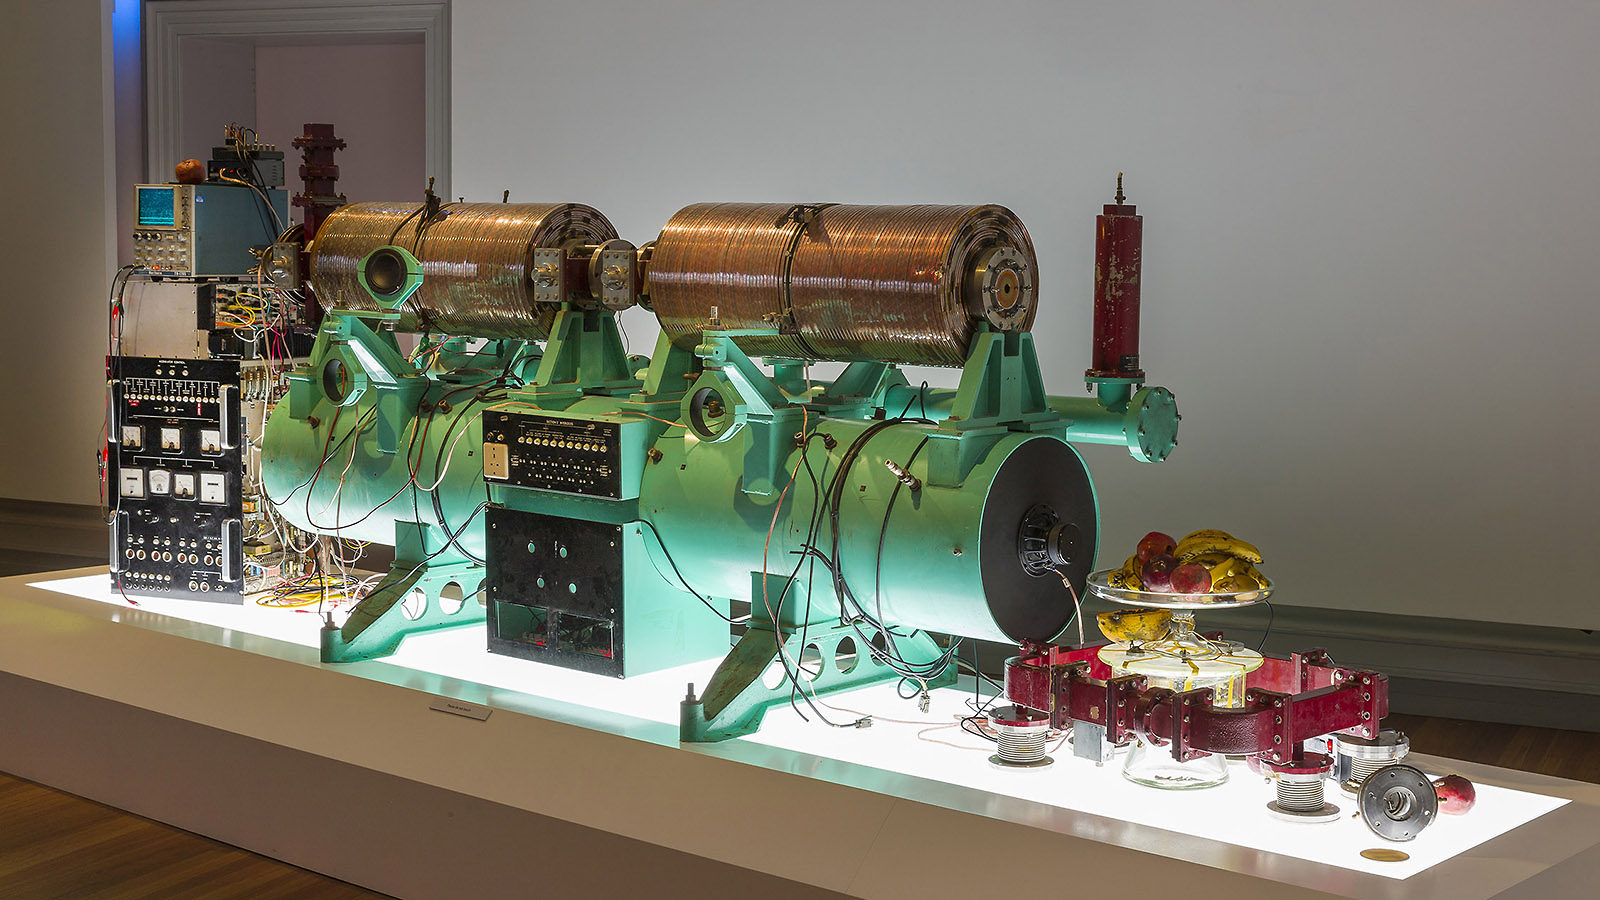 Green piece of an accelerator machinery and a plate of fruit on a lit table